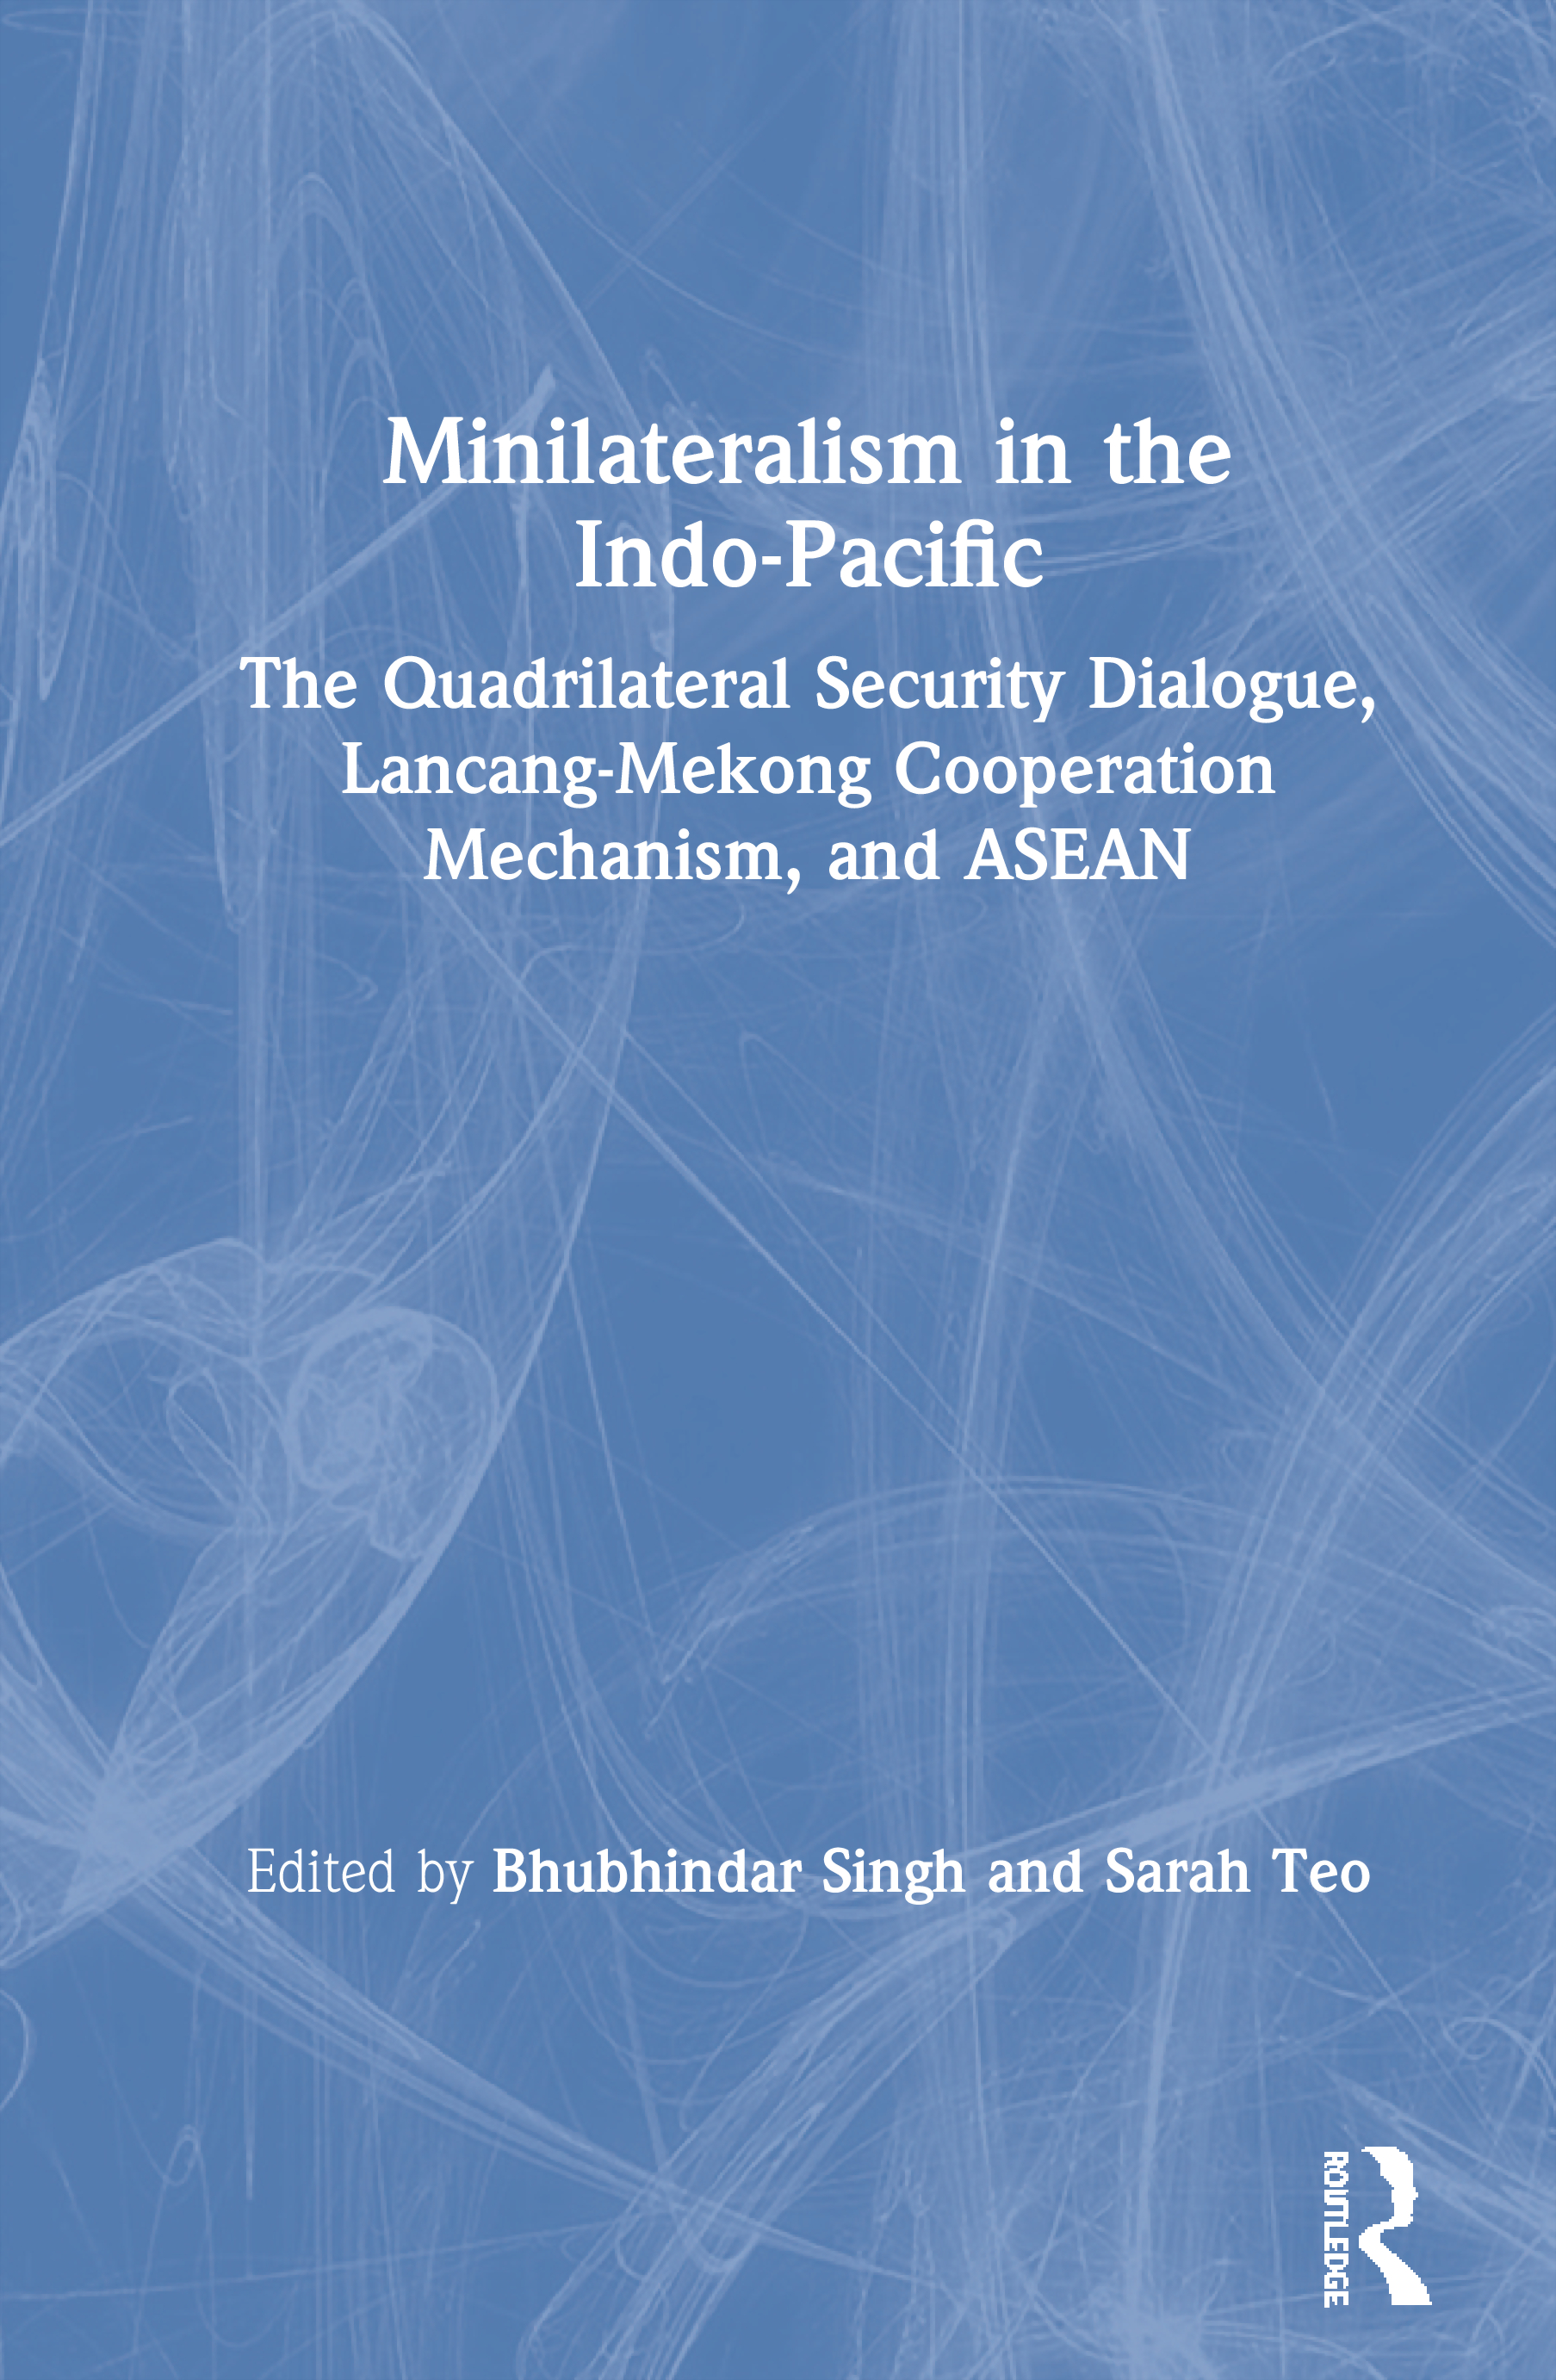 Minilateralism in the Indo-Pacific: The Quadrilateral Security Dialogue, Lancang-Mekong Cooperation Mechanism, and ASEAN, 1st Edition (Paperback) book cover